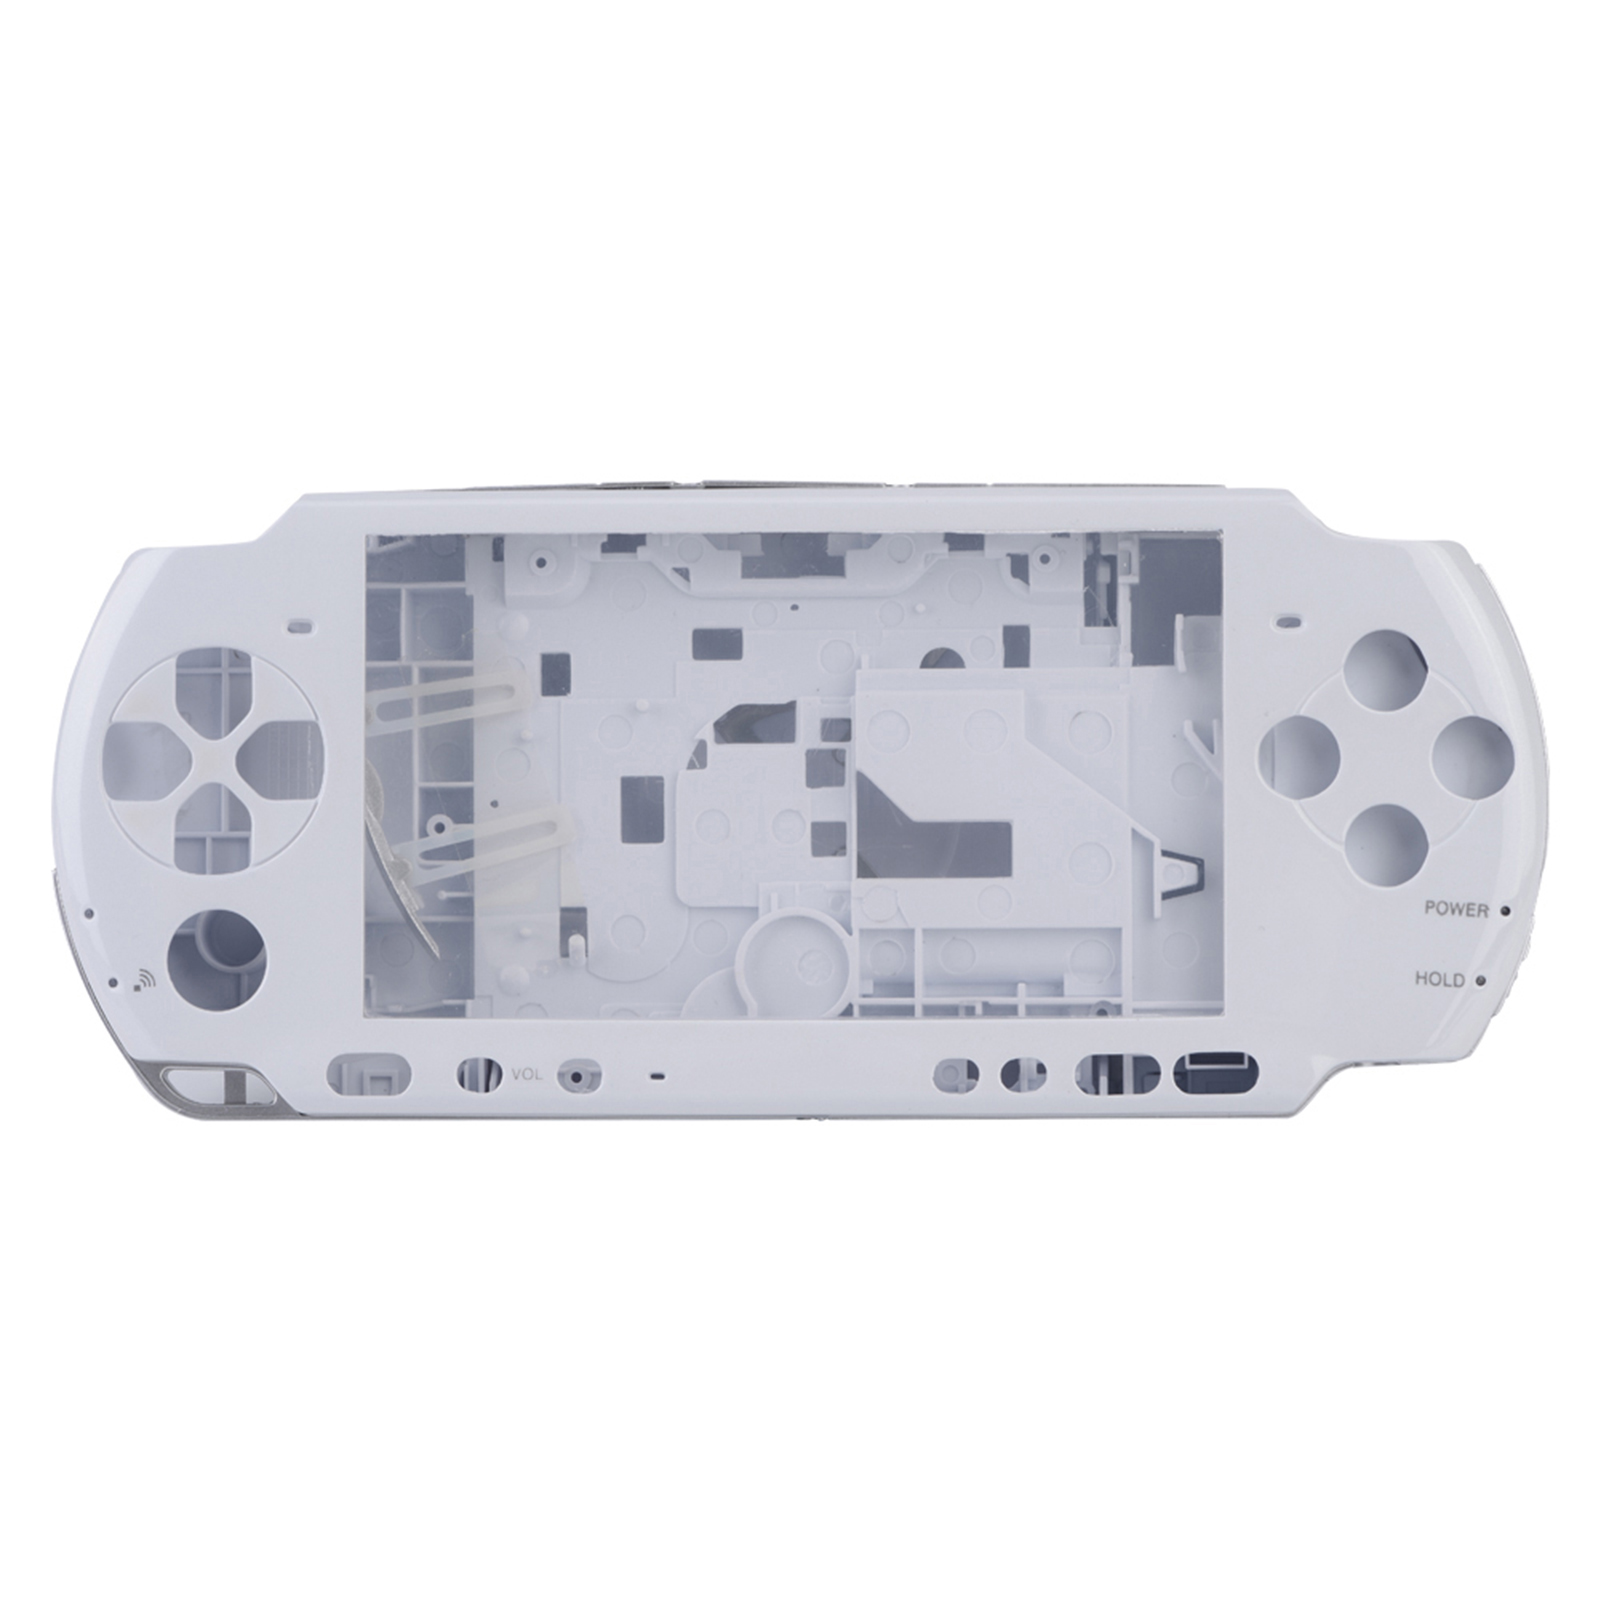 Full-Housing-Shell-Case-Cover-Faceplate-Set-Repair-Part-for-PSP-3000-Slim-Series thumbnail 14